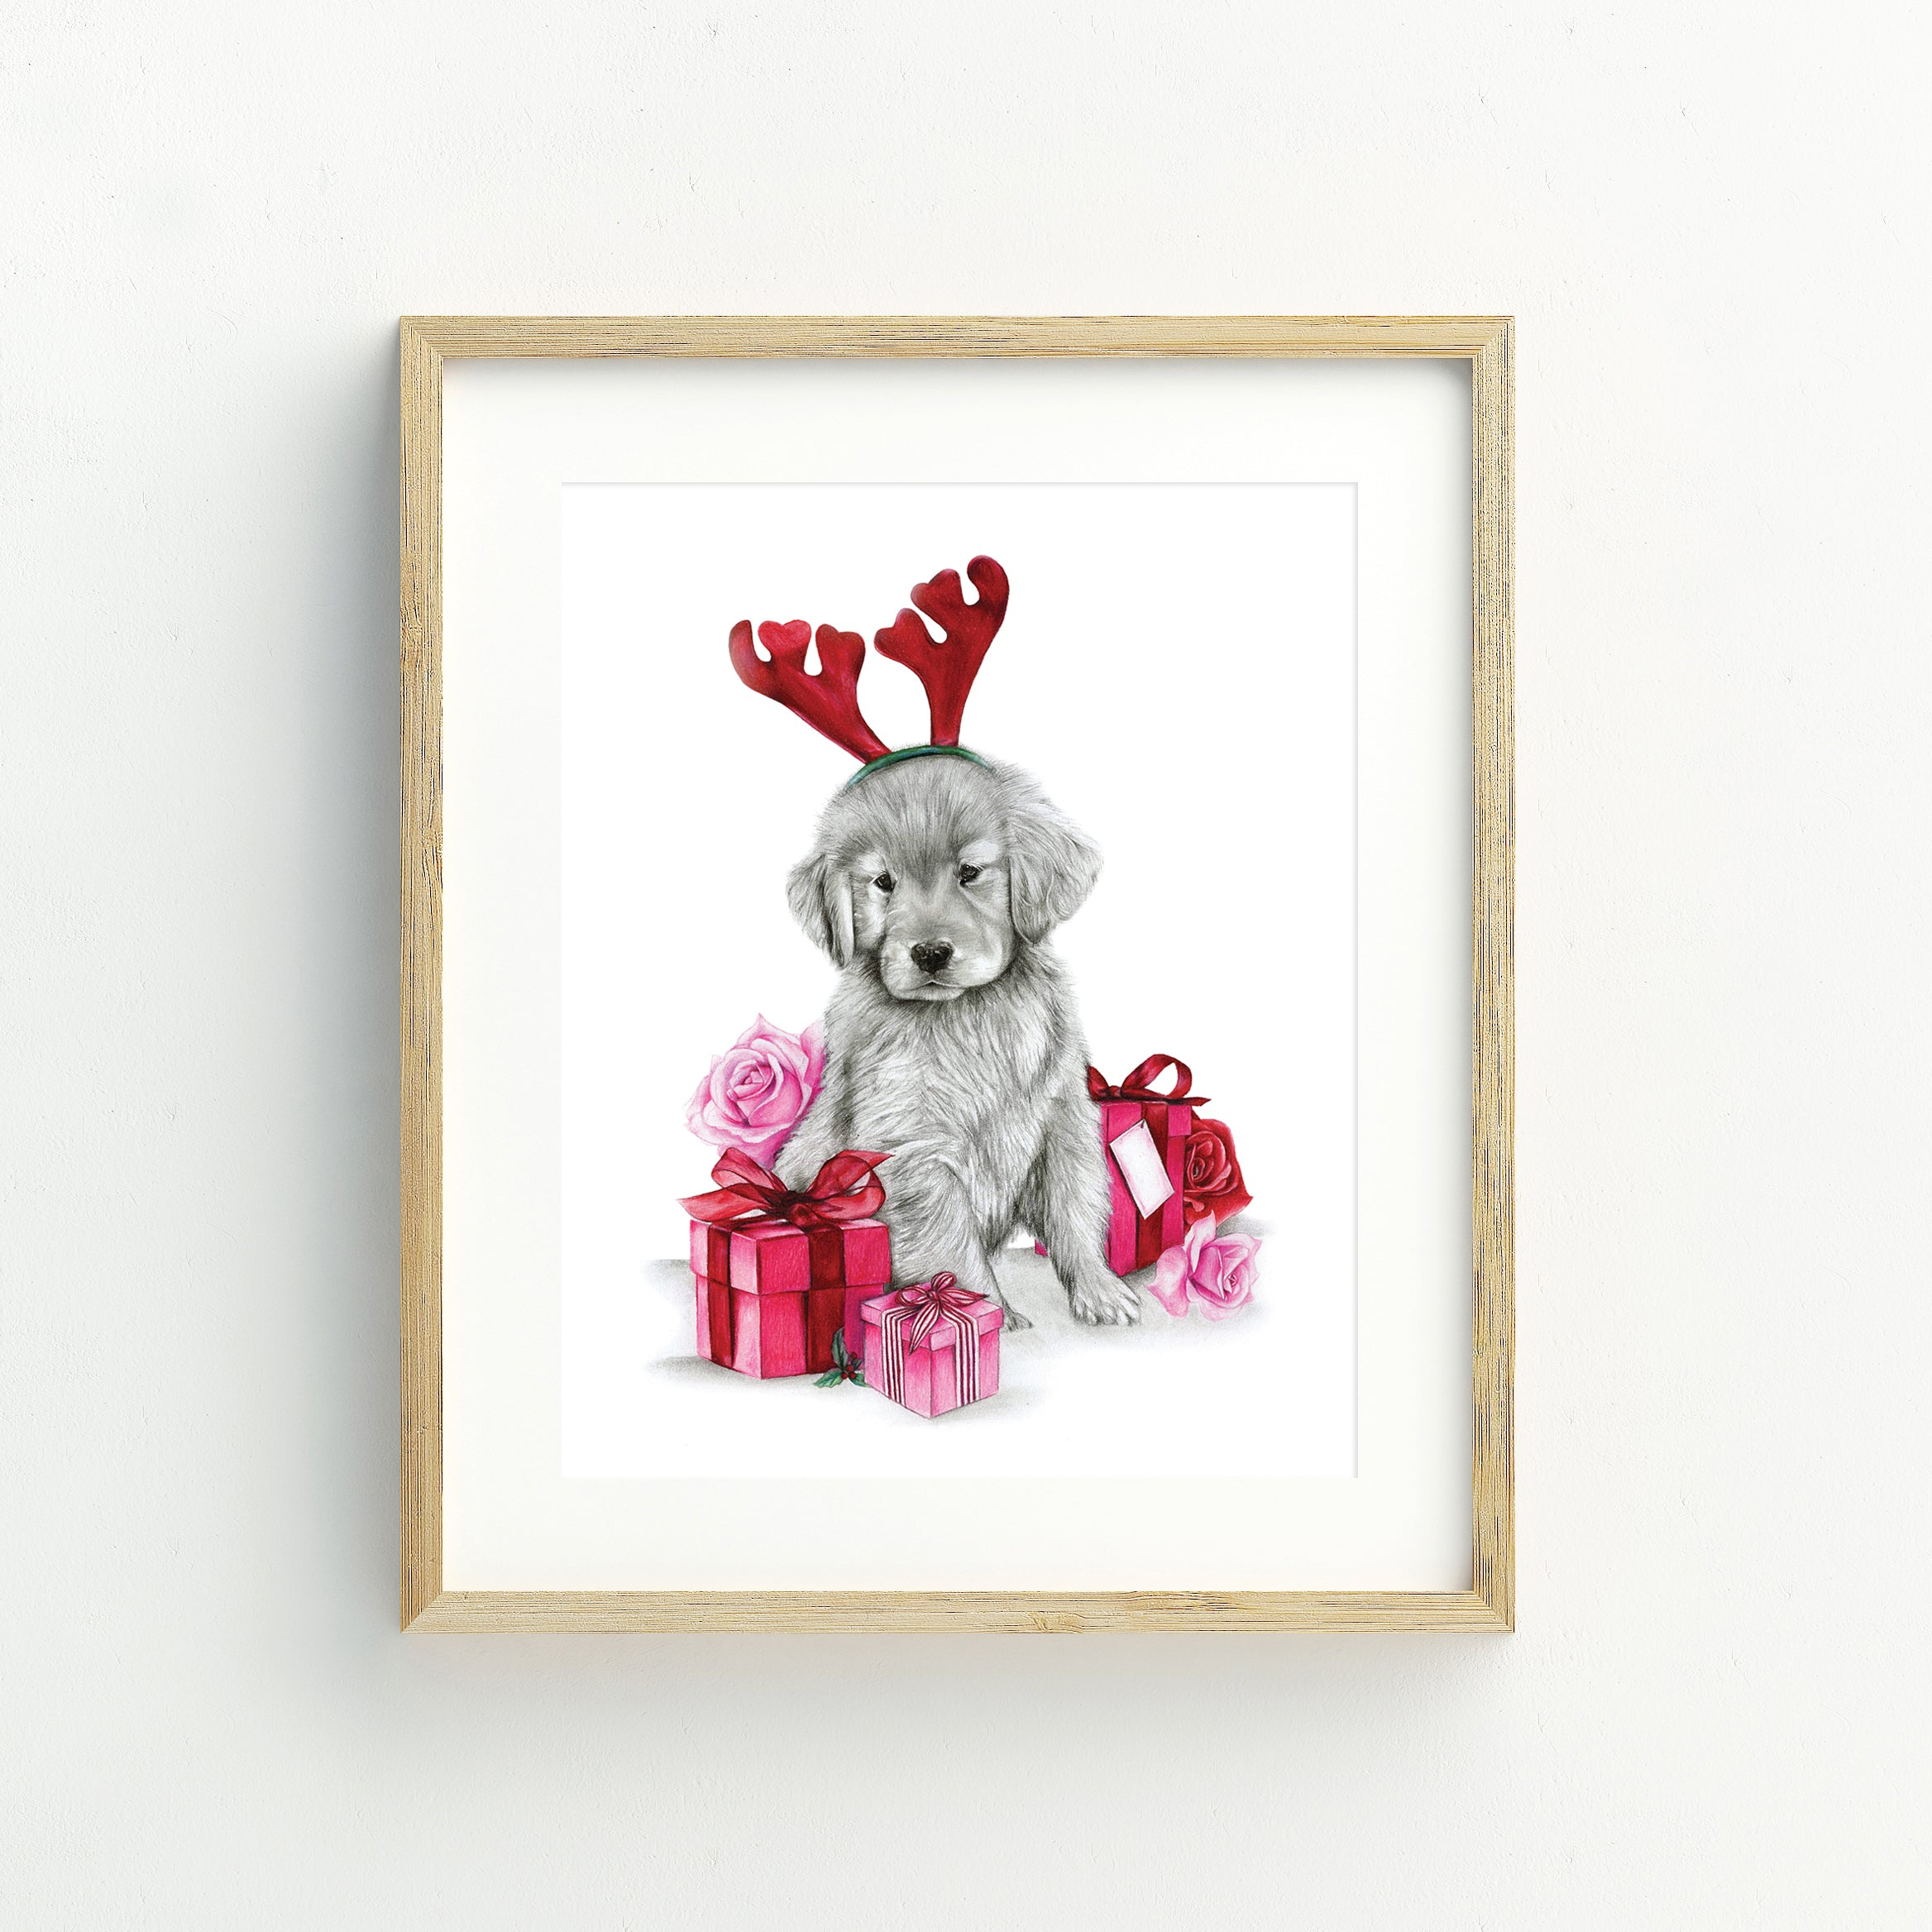 Russell the Reindeer - A5 Print